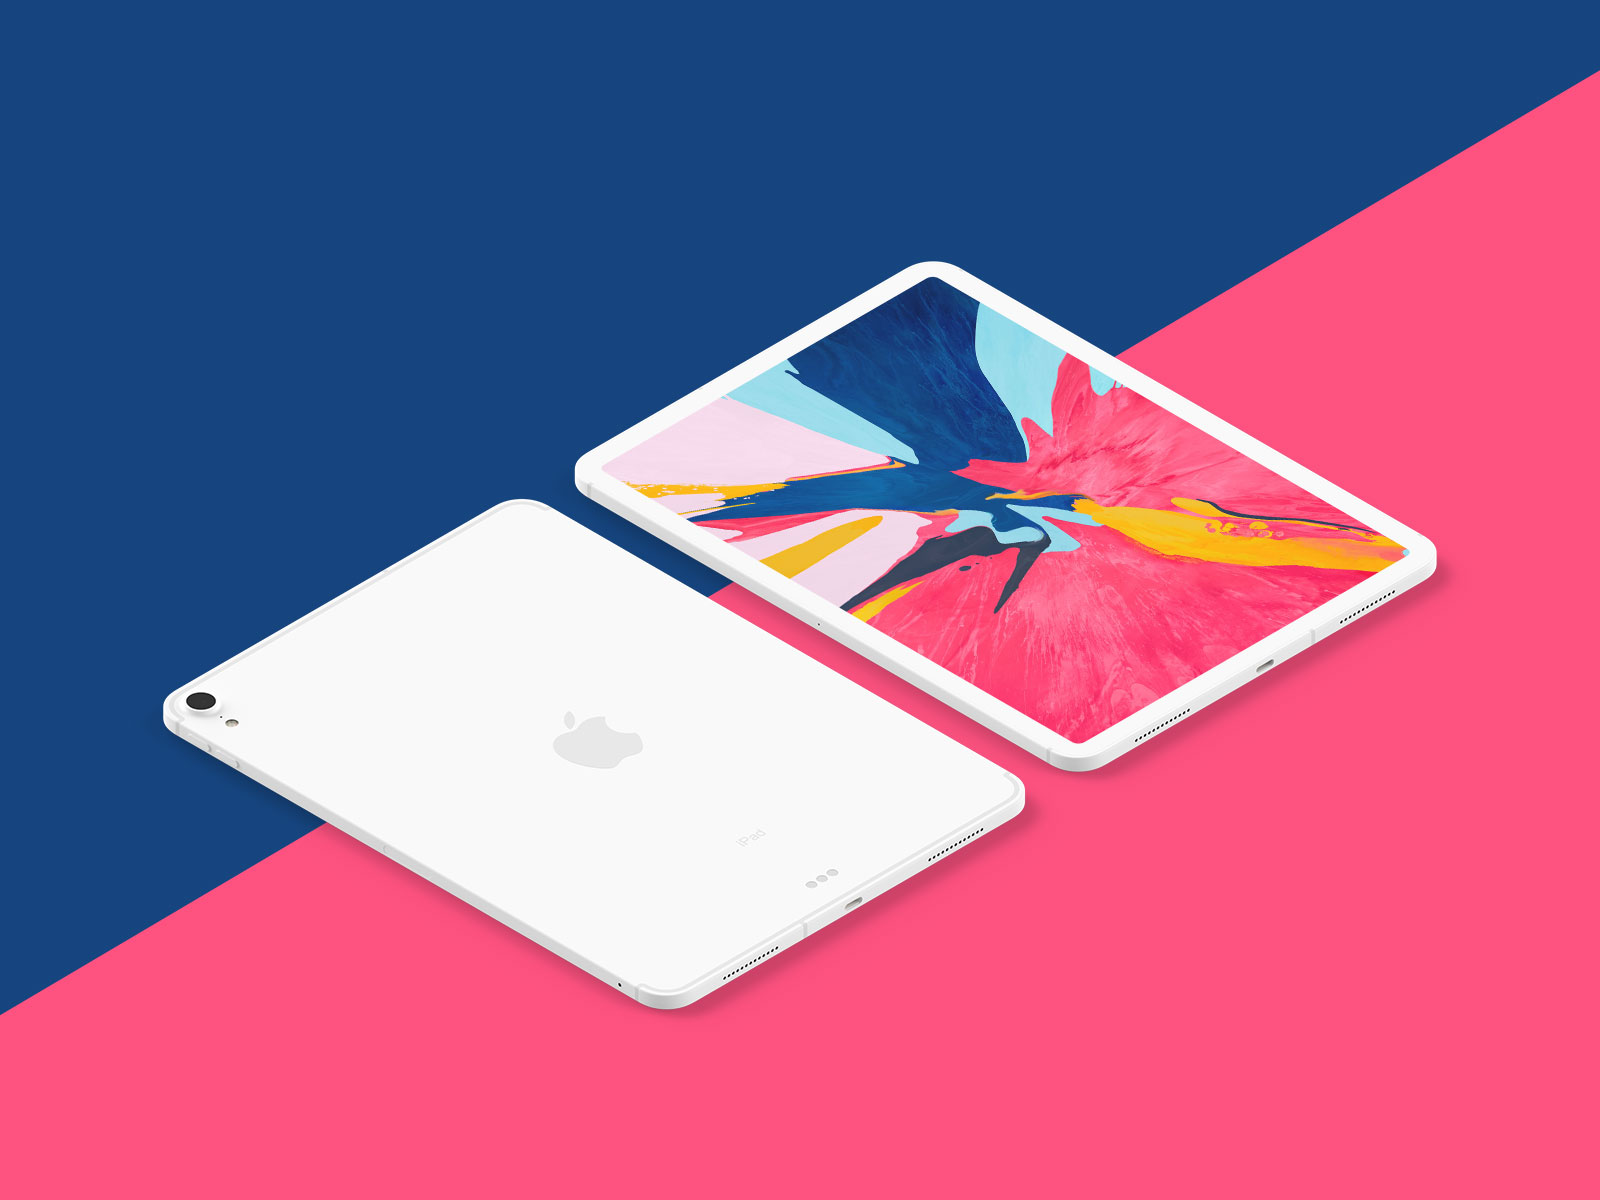 Free-New-iPad-Pro-2018-Mockup-PSD-in-Perspective-Vew-3